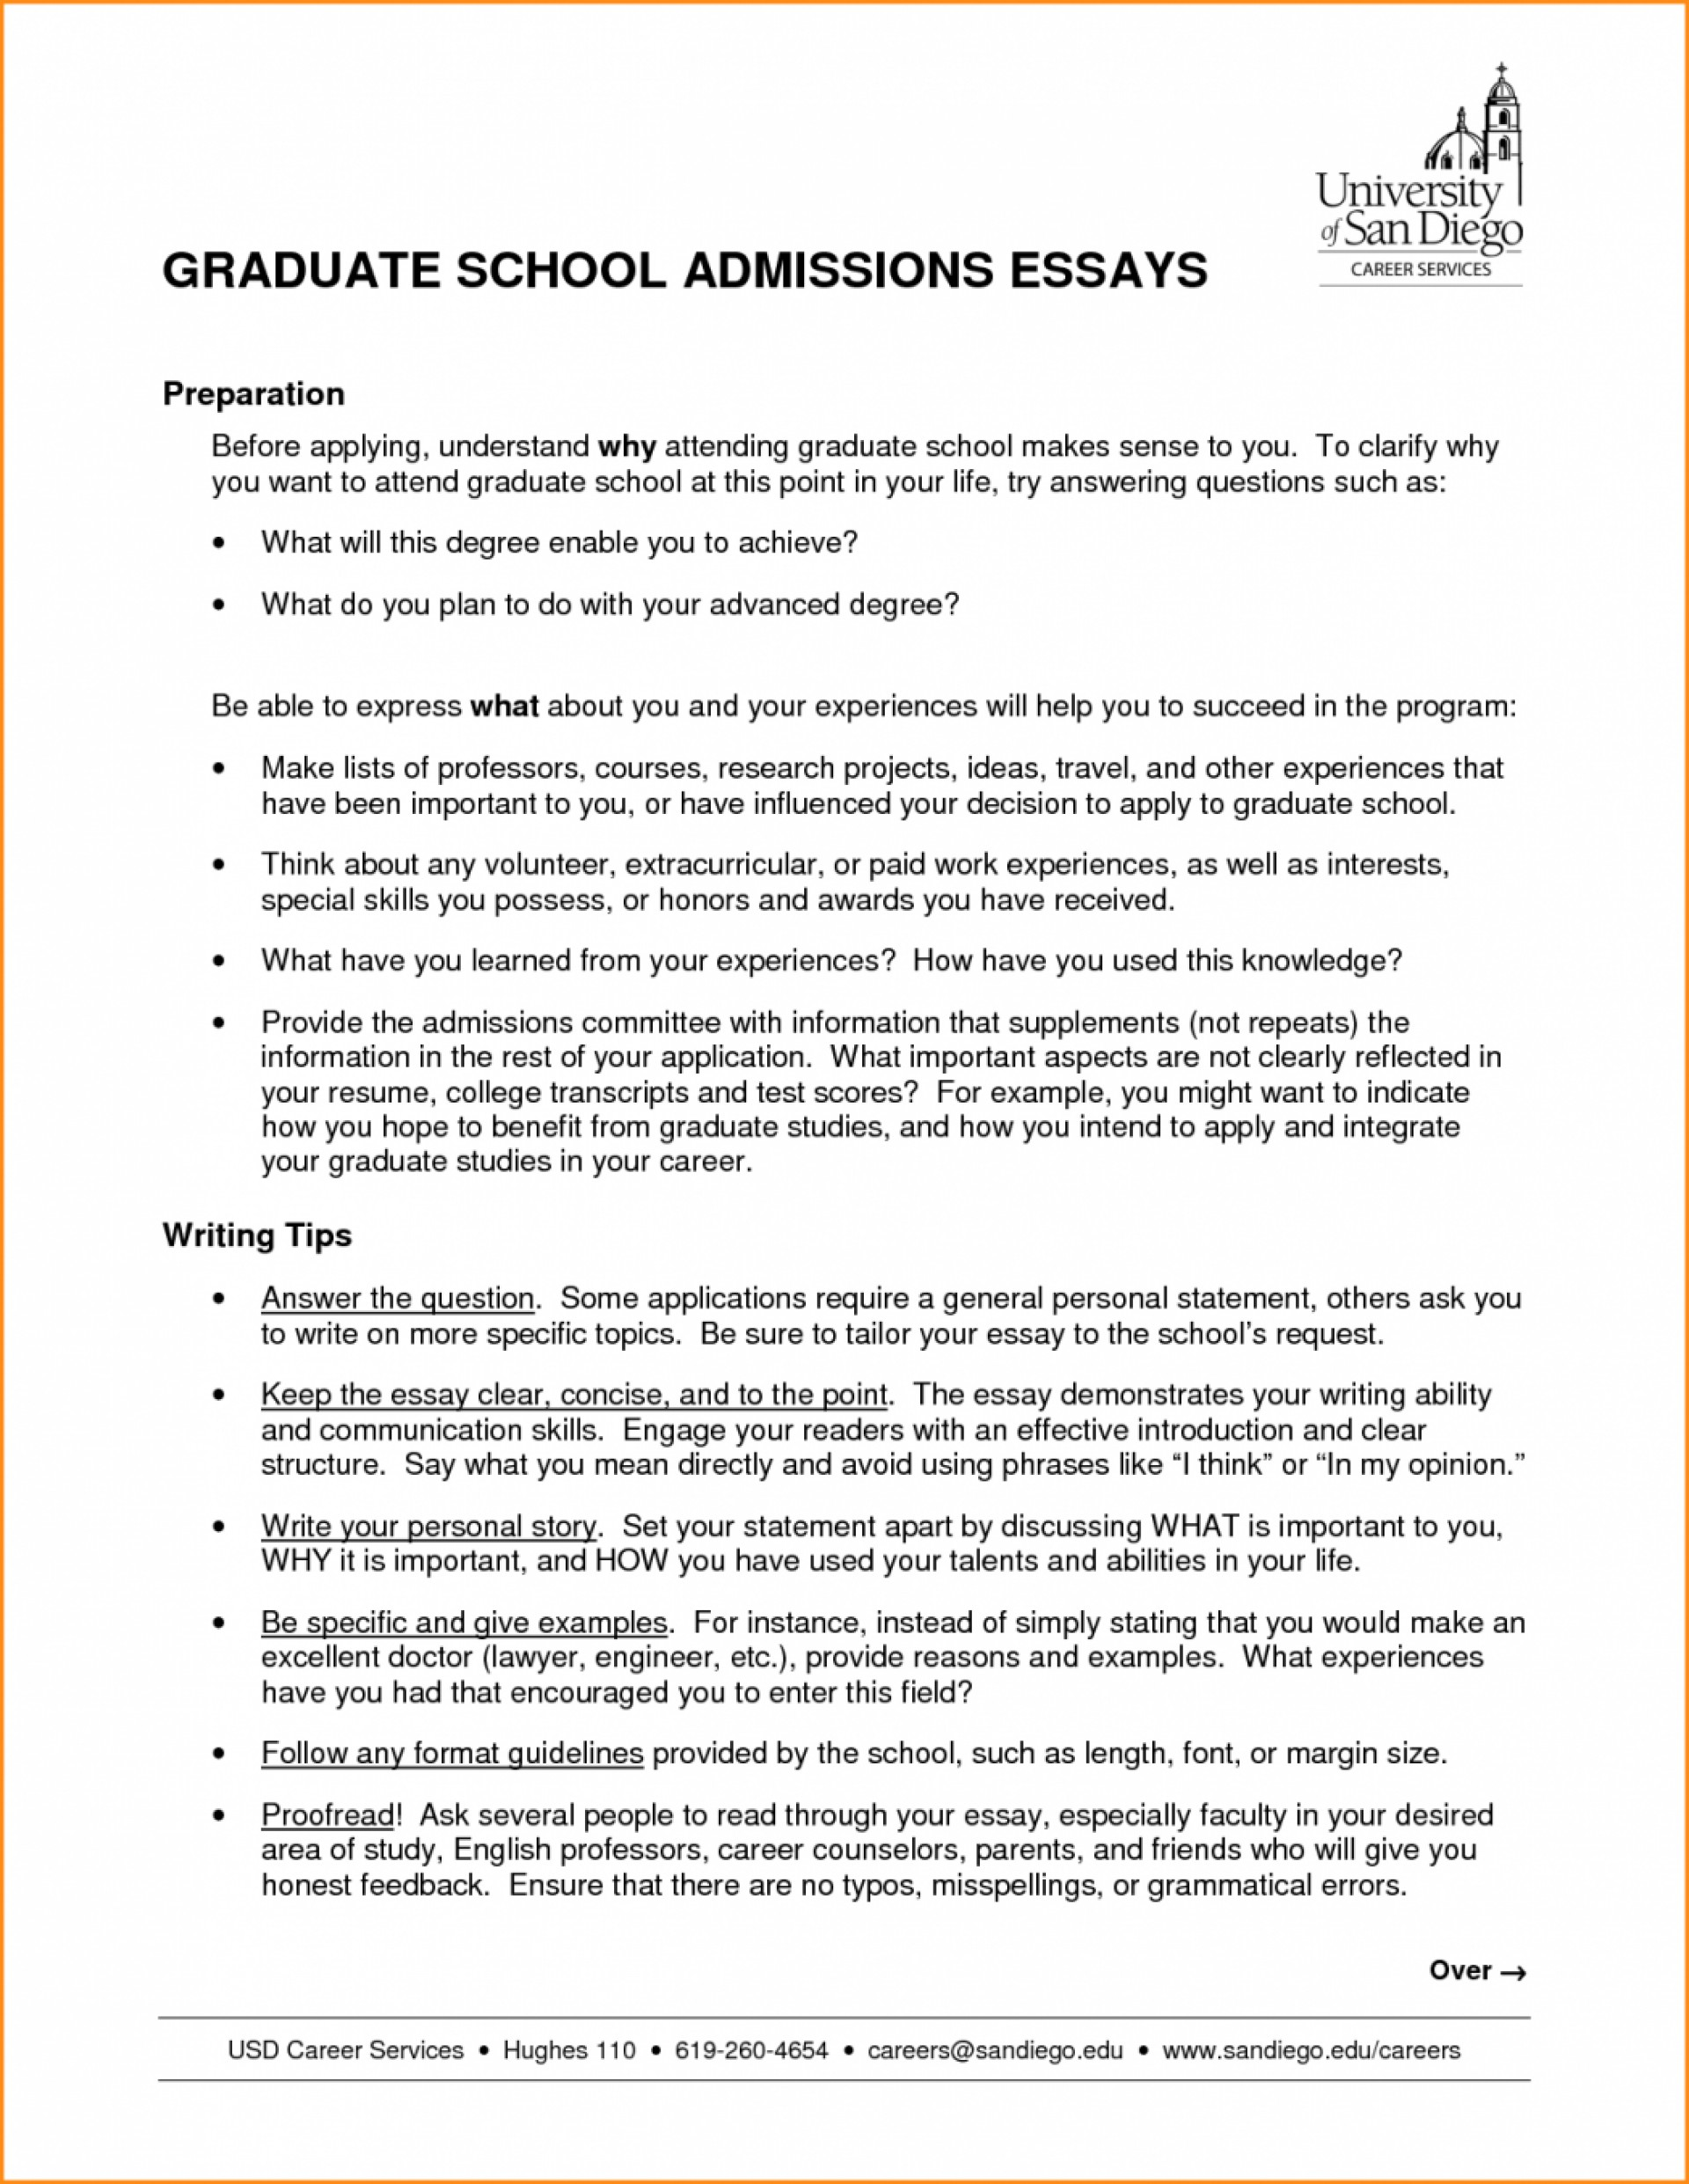 015 Sample High School Admission Essays Essay Example Admissions Catholic Samples Free Unusual 1920